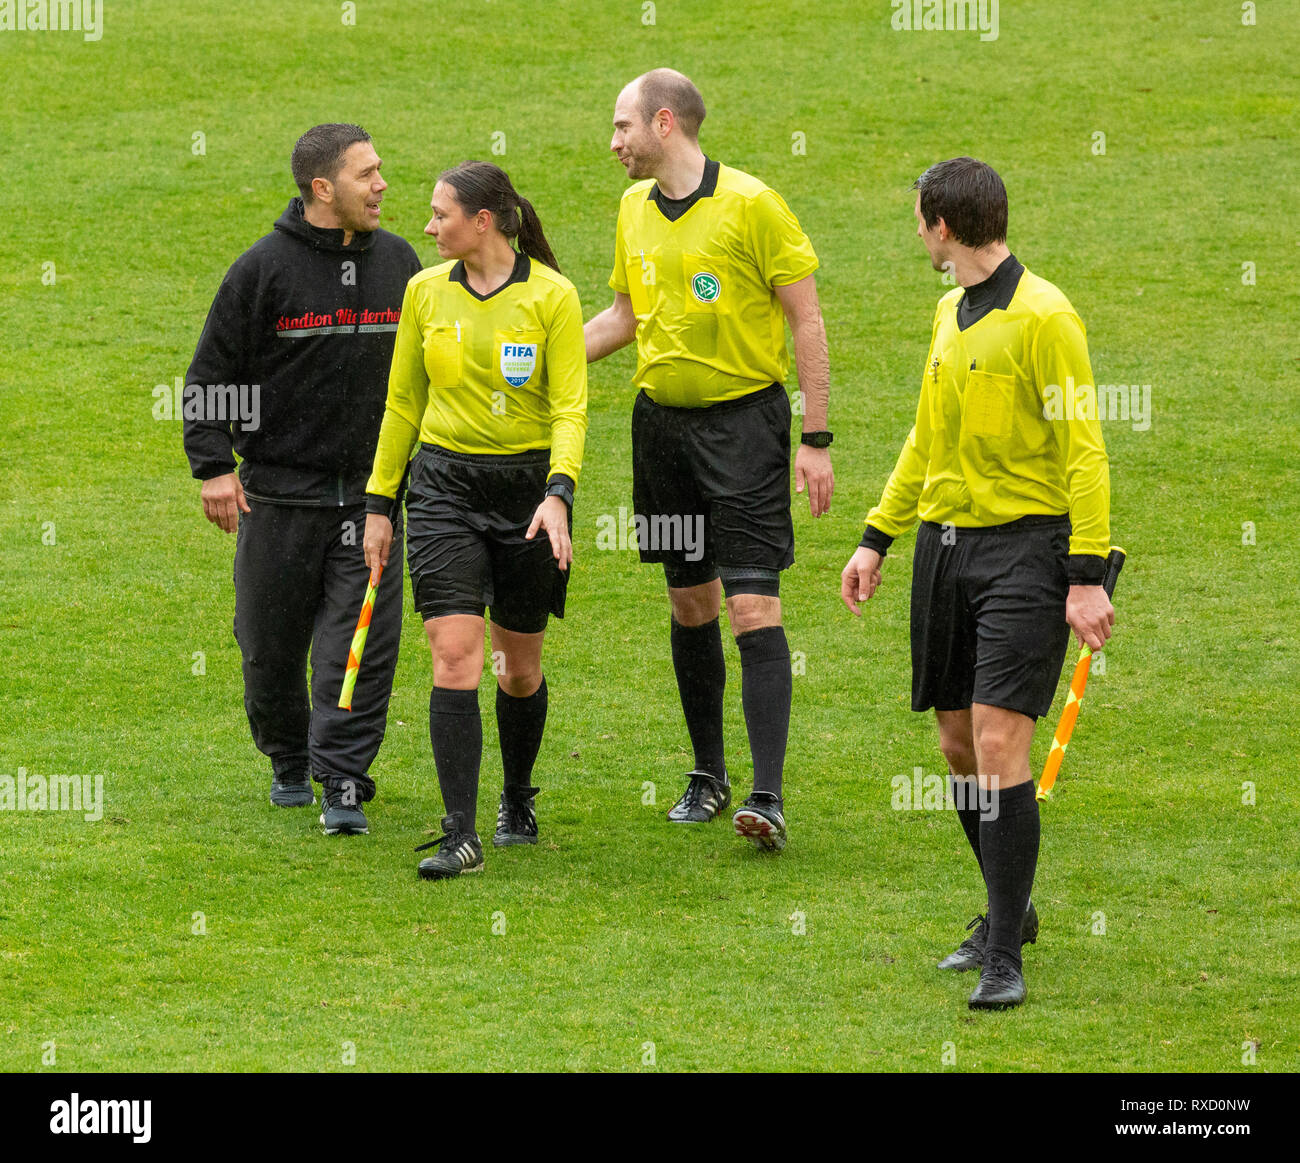 sports, football, Regional League West, 2018/2019, Rot Weiss Oberhausen vs Bonner SC 01/04 4-0, Stadium Niederrhein in Oberhausen, head coach Mike Terranova (RWO) left in conversation with the match officials, f.l.t.r. assistant Vanessa Arlt, referee Fabian Maibaum, assistant Lukas Sauer - Stock Image